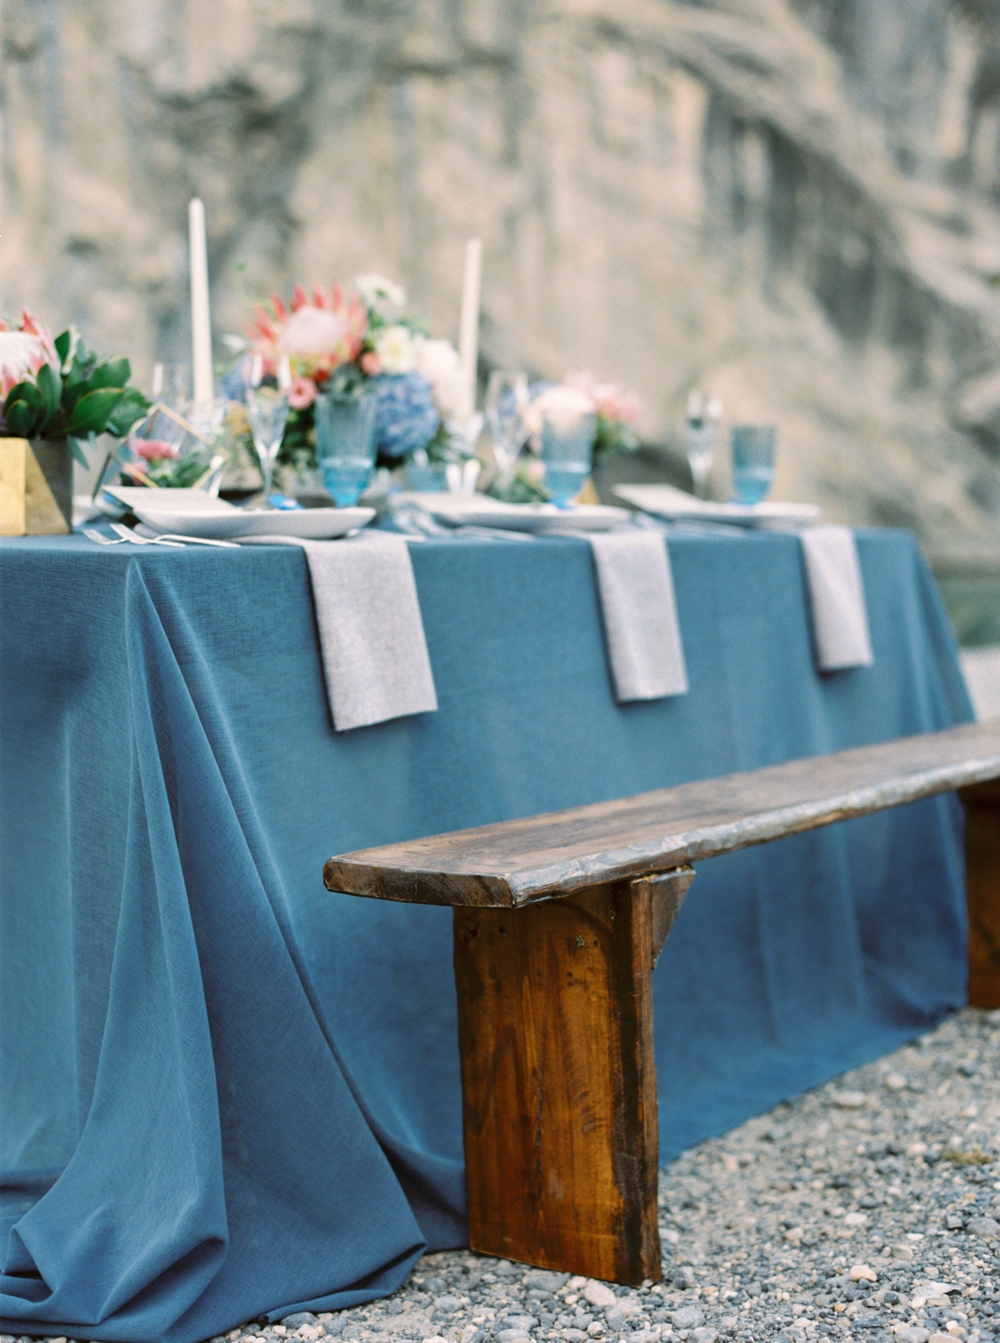 Canmore Wedding Photographers | Calgary wedding photography | Naturally Chic Weddings | Willow Flower Co. | The Bridal Boutique | Natural Blues and Greys Editorial Shoot